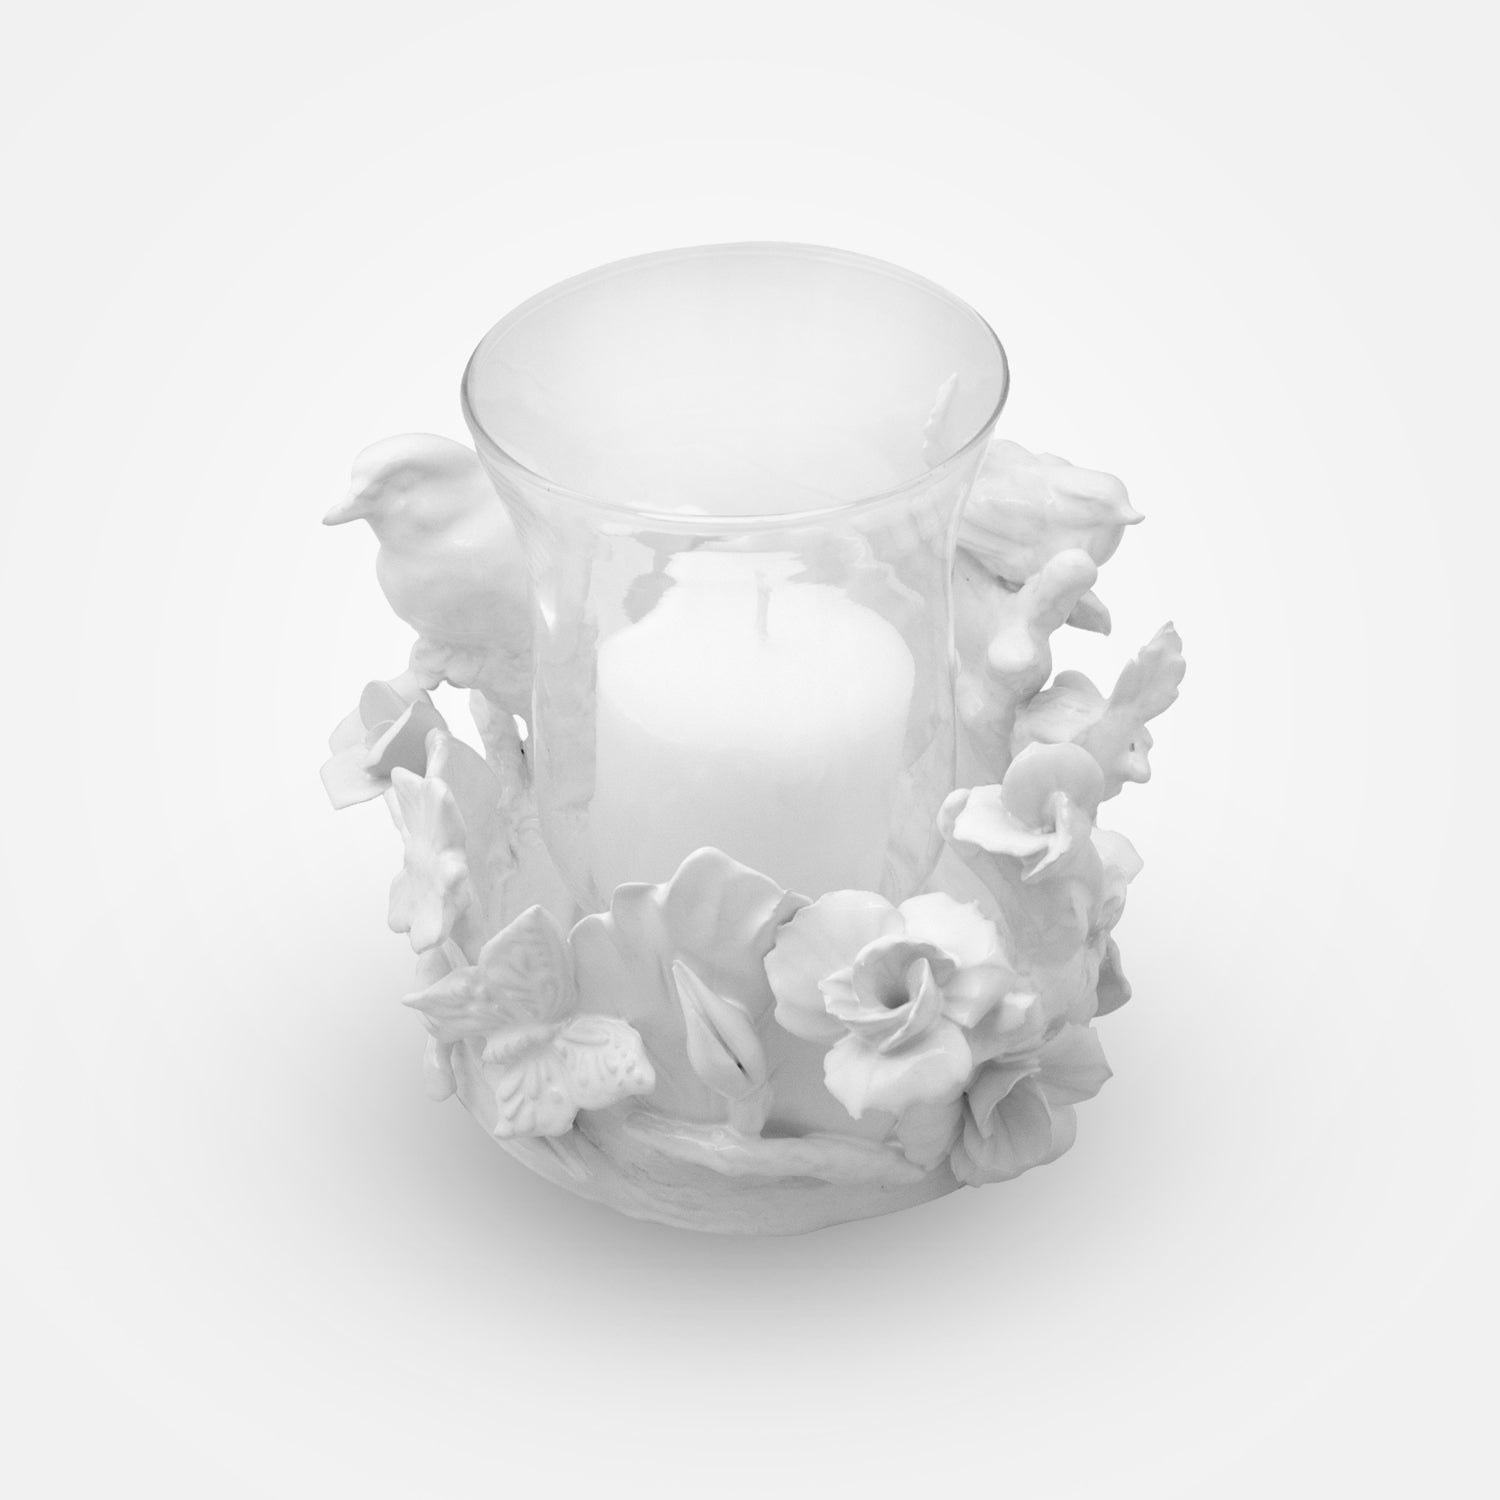 Birds & Flowers Ceramic & Glass Candle Holder by I. Borbone